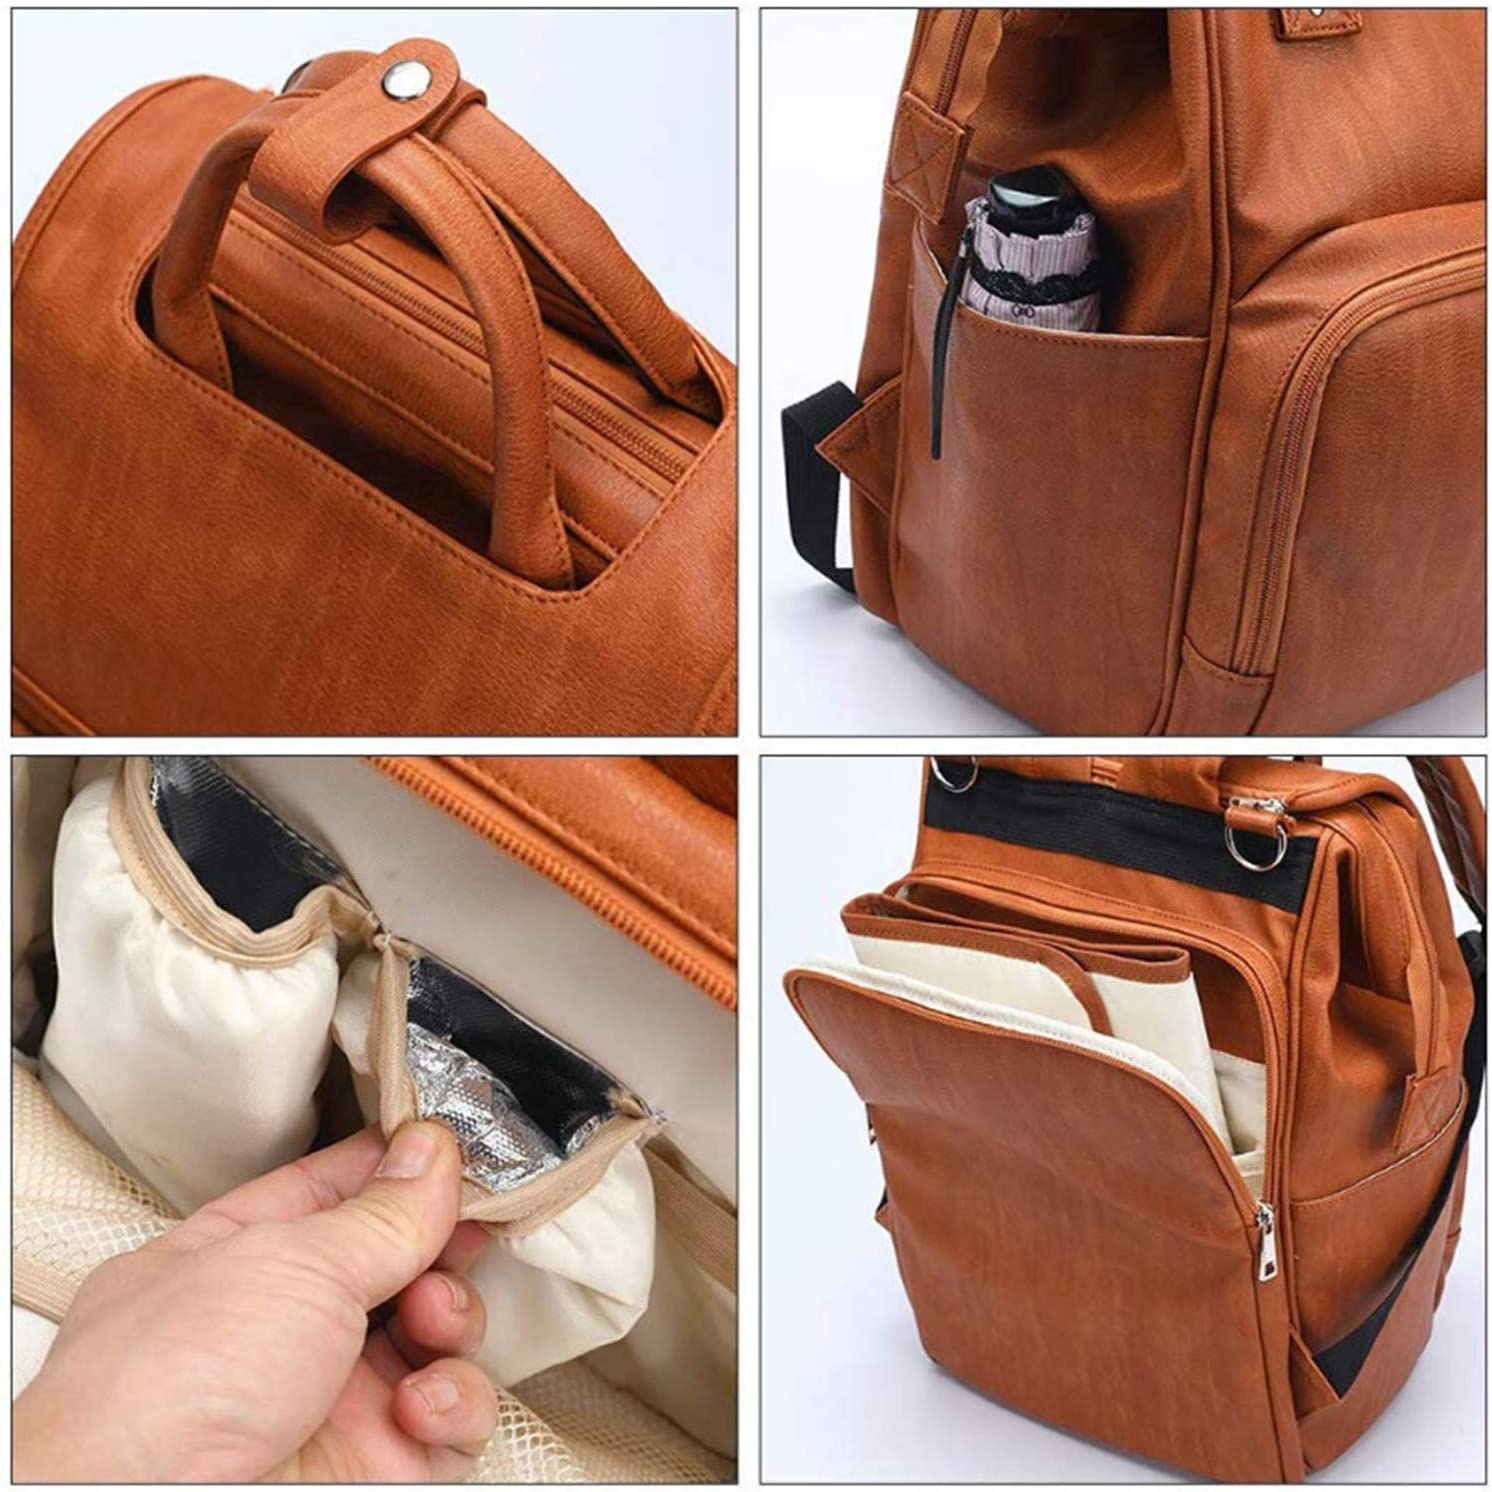 Maternity Newborn Baby Back Pack EZGO Diaper Backpack Stroller Hanger Leather Diaper Bag with Changing Pad